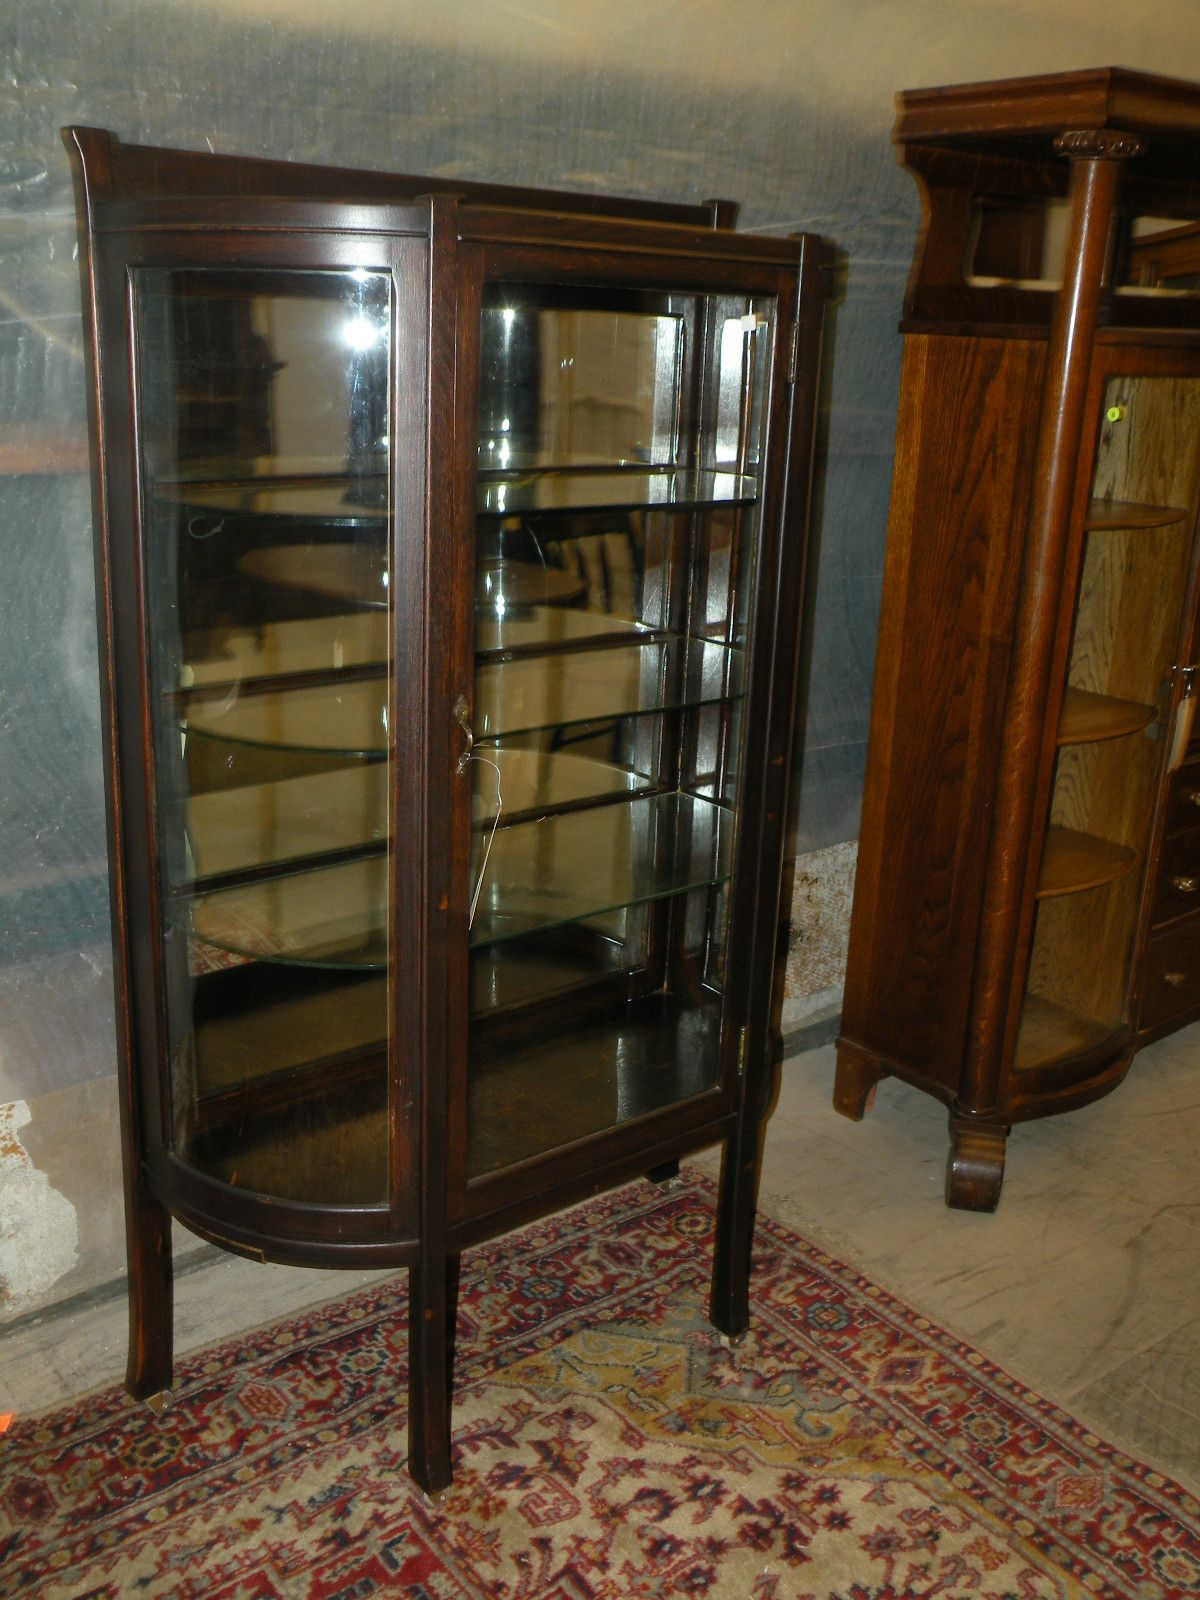 Antique Mission Oak Curved Glass Front Curio Display Cabinet   eBay. Antique Mission Oak Curved Glass Front Curio Display Cabinet